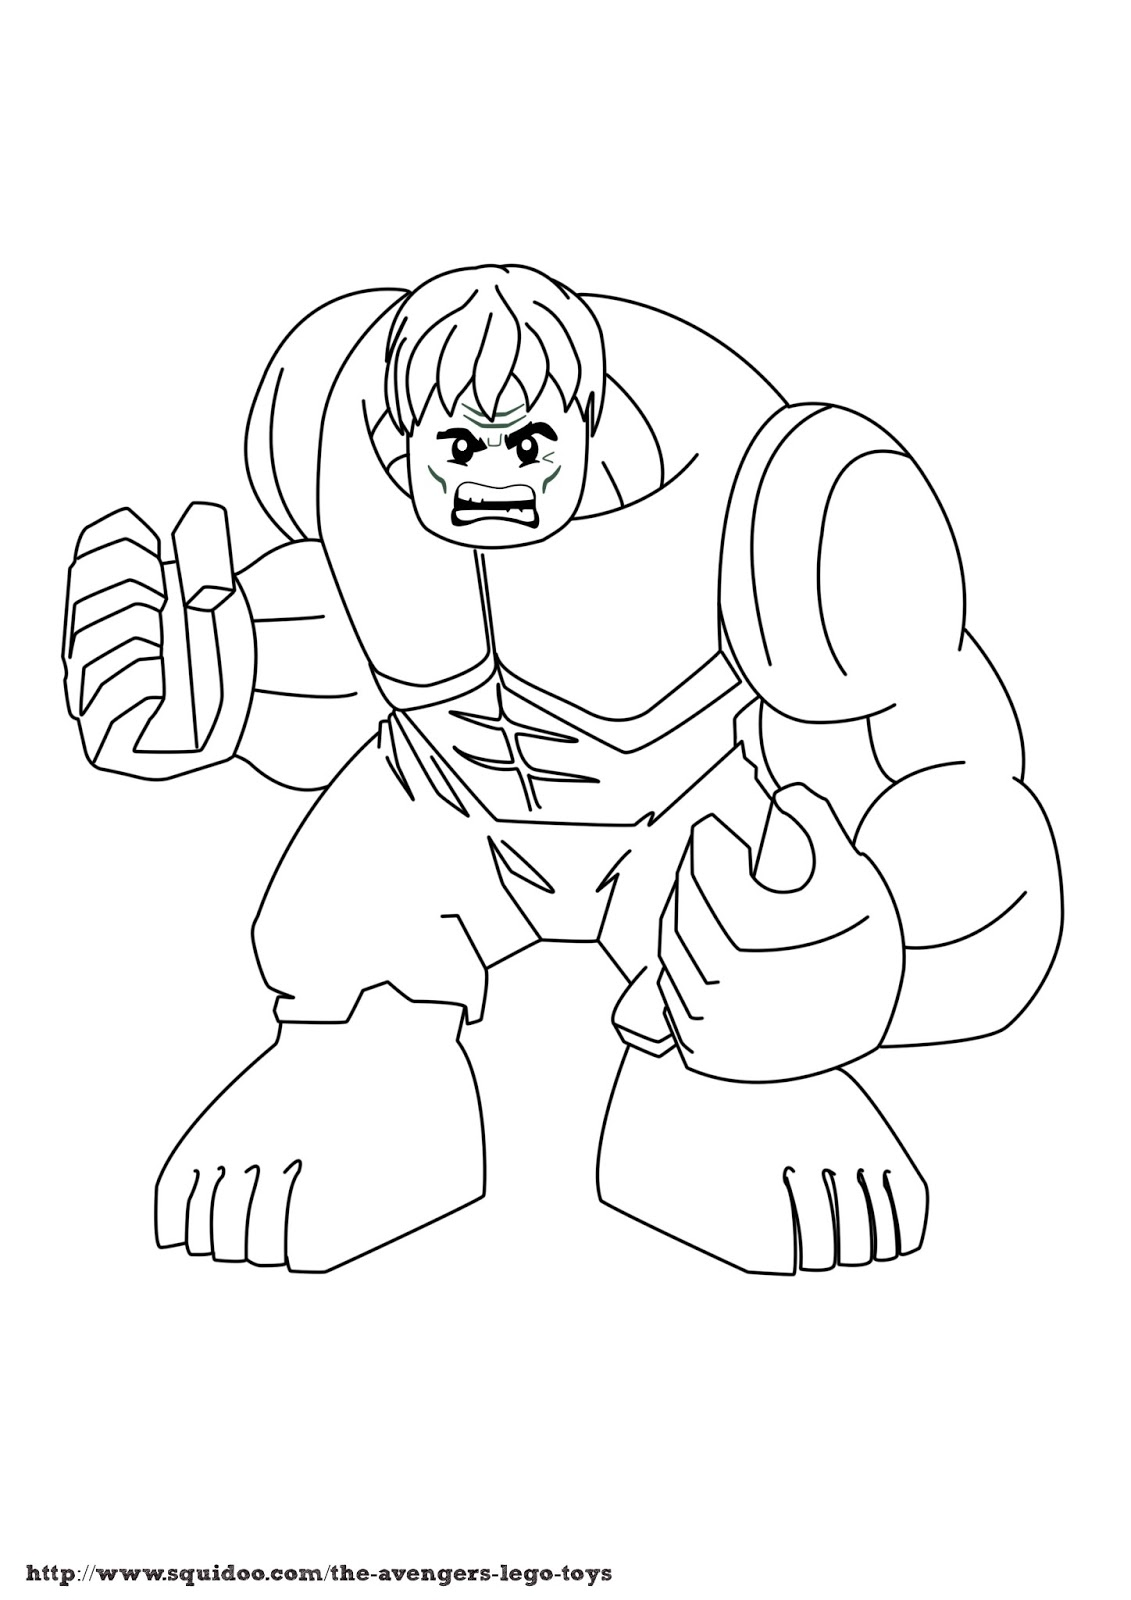 cute hulk coloring pages hulk cartoon coloring pages download and print for free cute coloring hulk pages 1 1